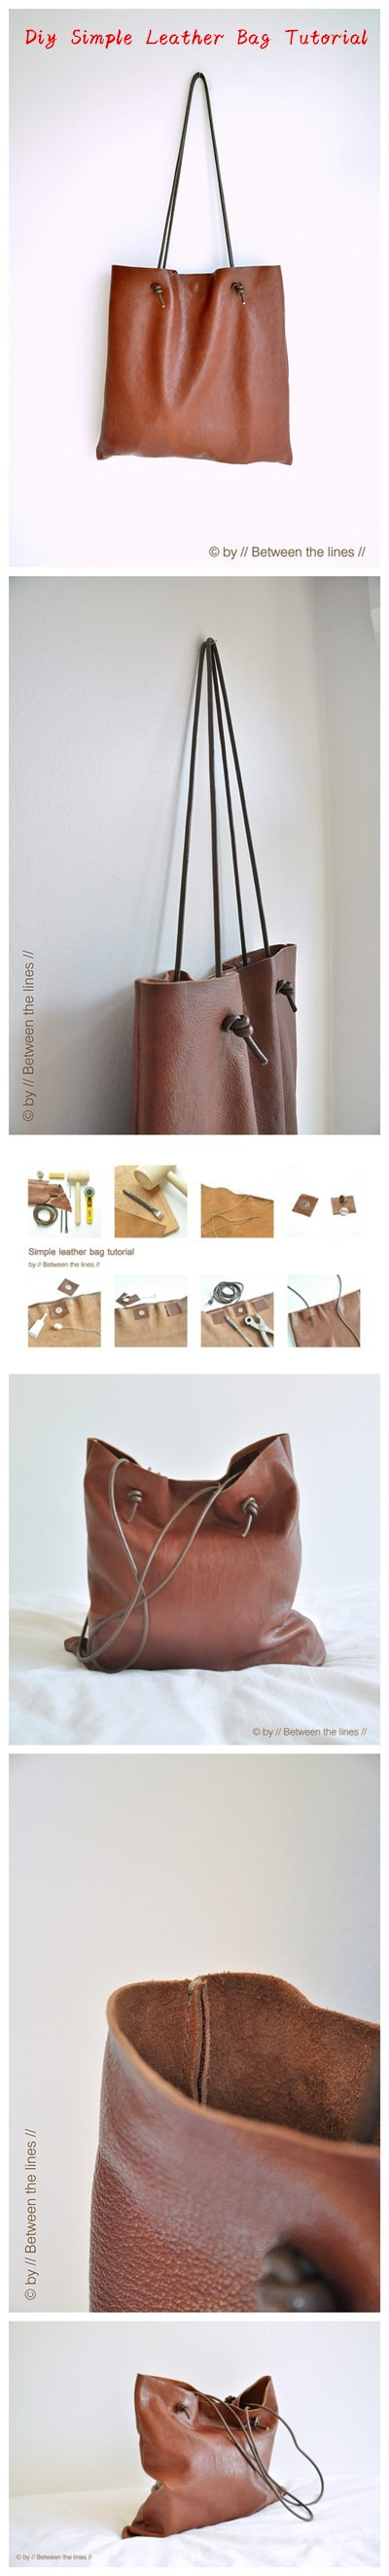 Diy Simple Leather Bag Tutorial